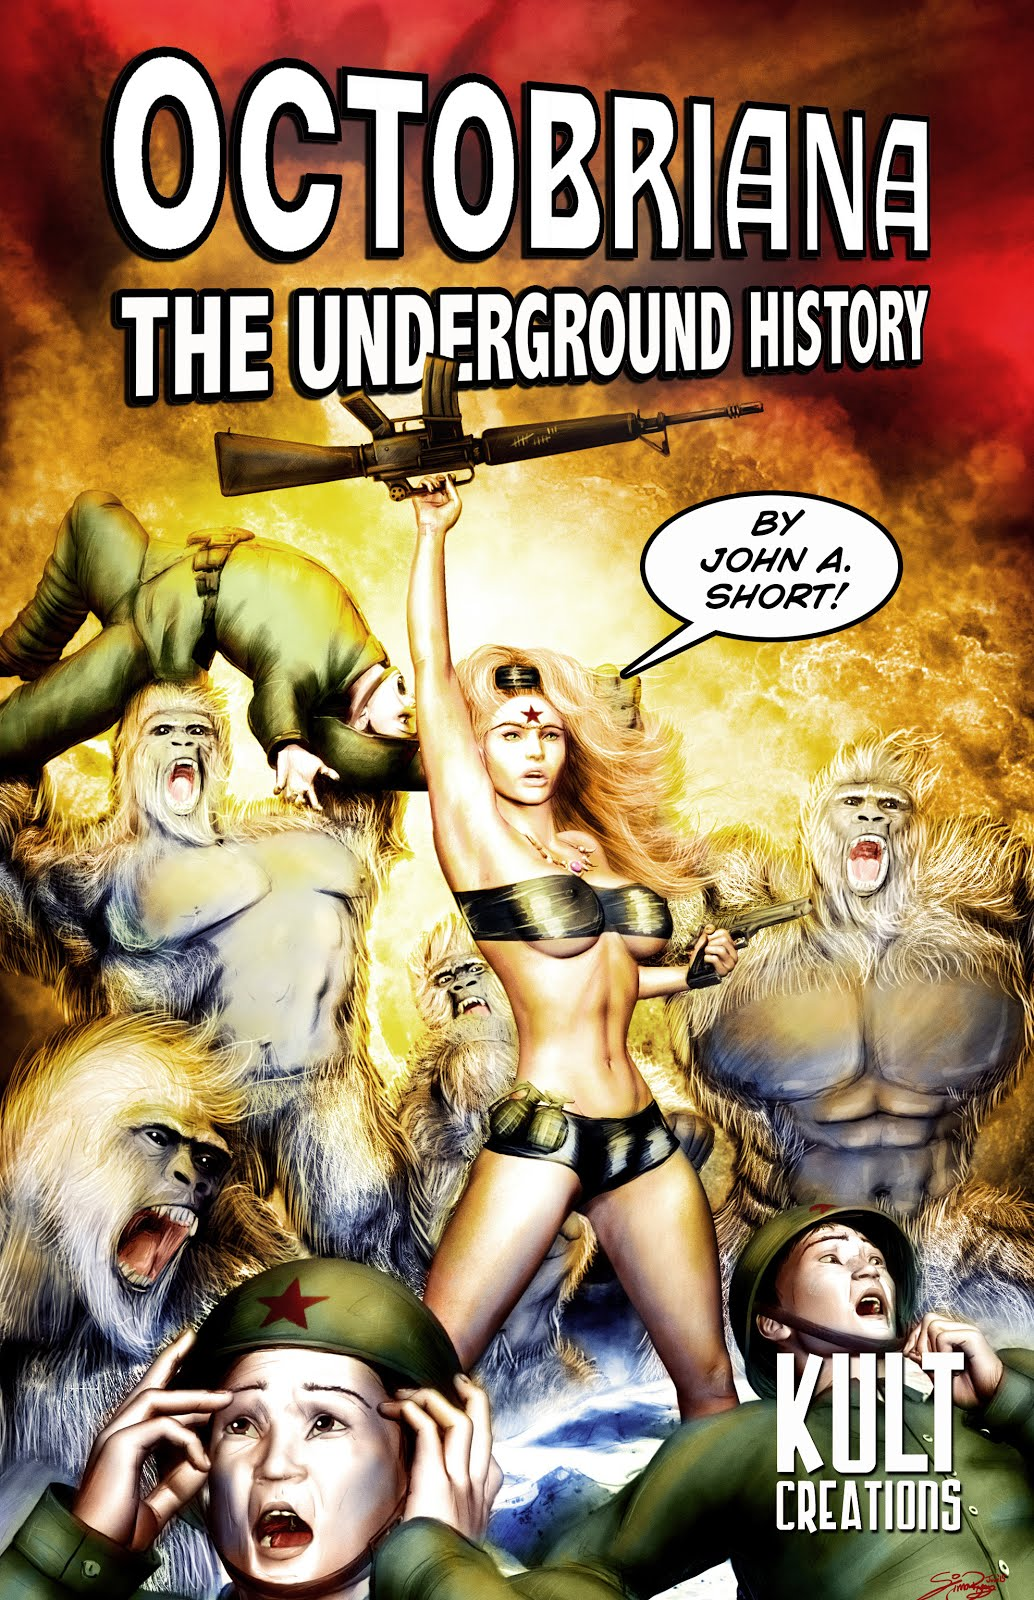 Link to buy OCTOBRIANA: THE UNDERGROUND HISTORY - kindle